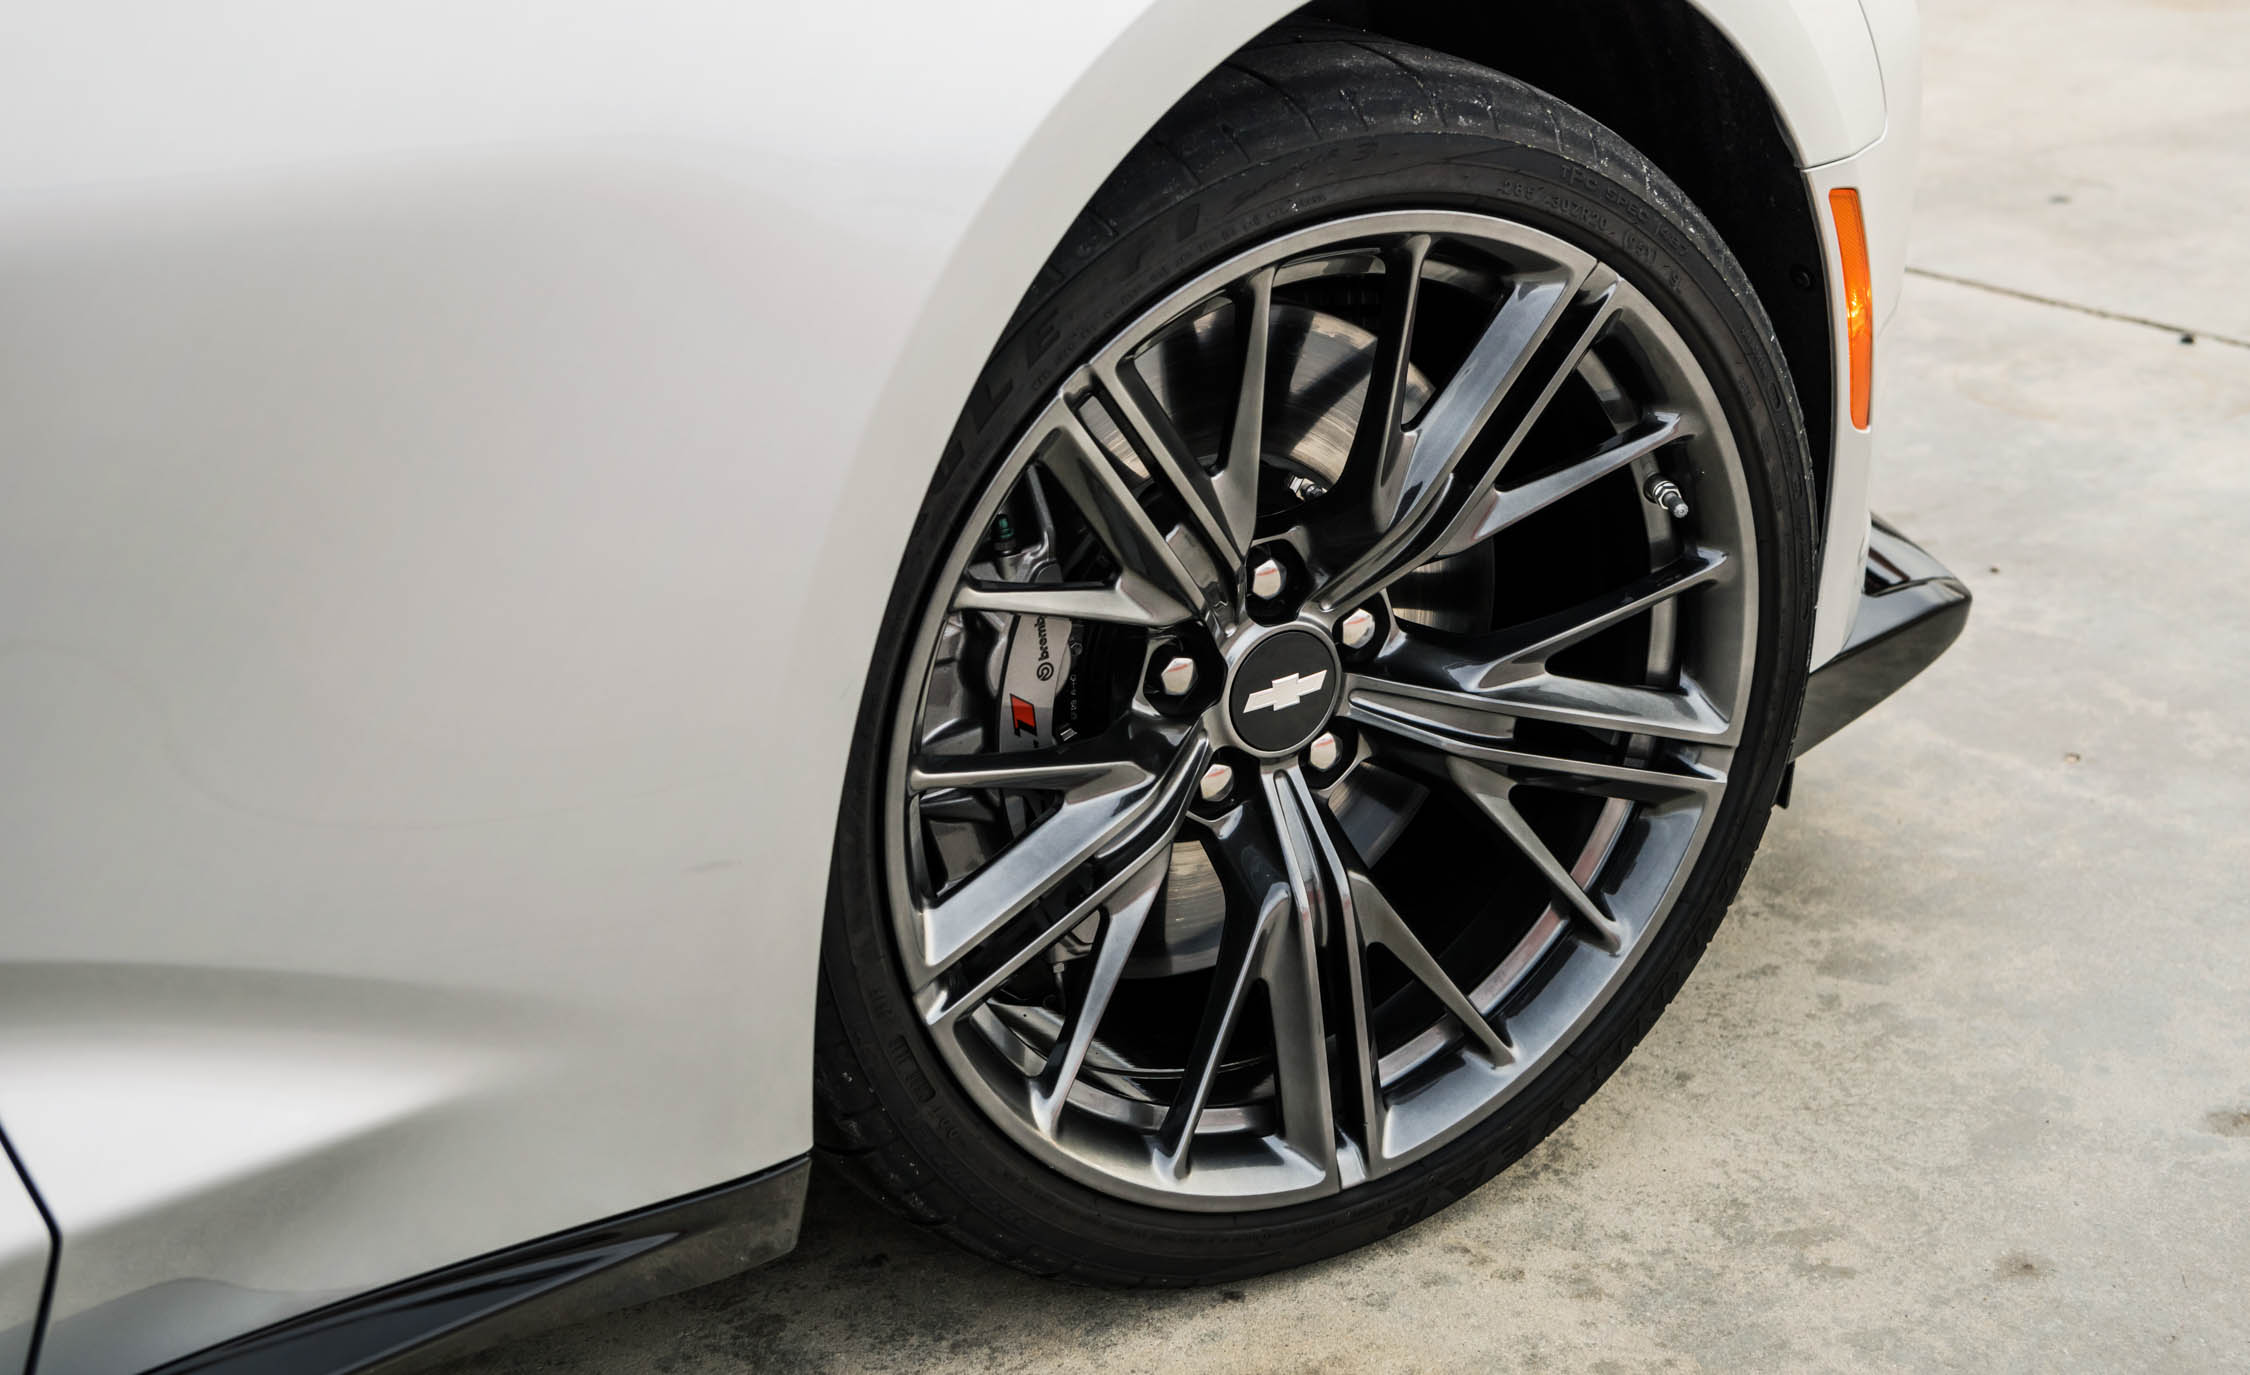 2017 Chevrolet Camaro ZL1 White Exterior View Wheel (Photo 56 of 62)